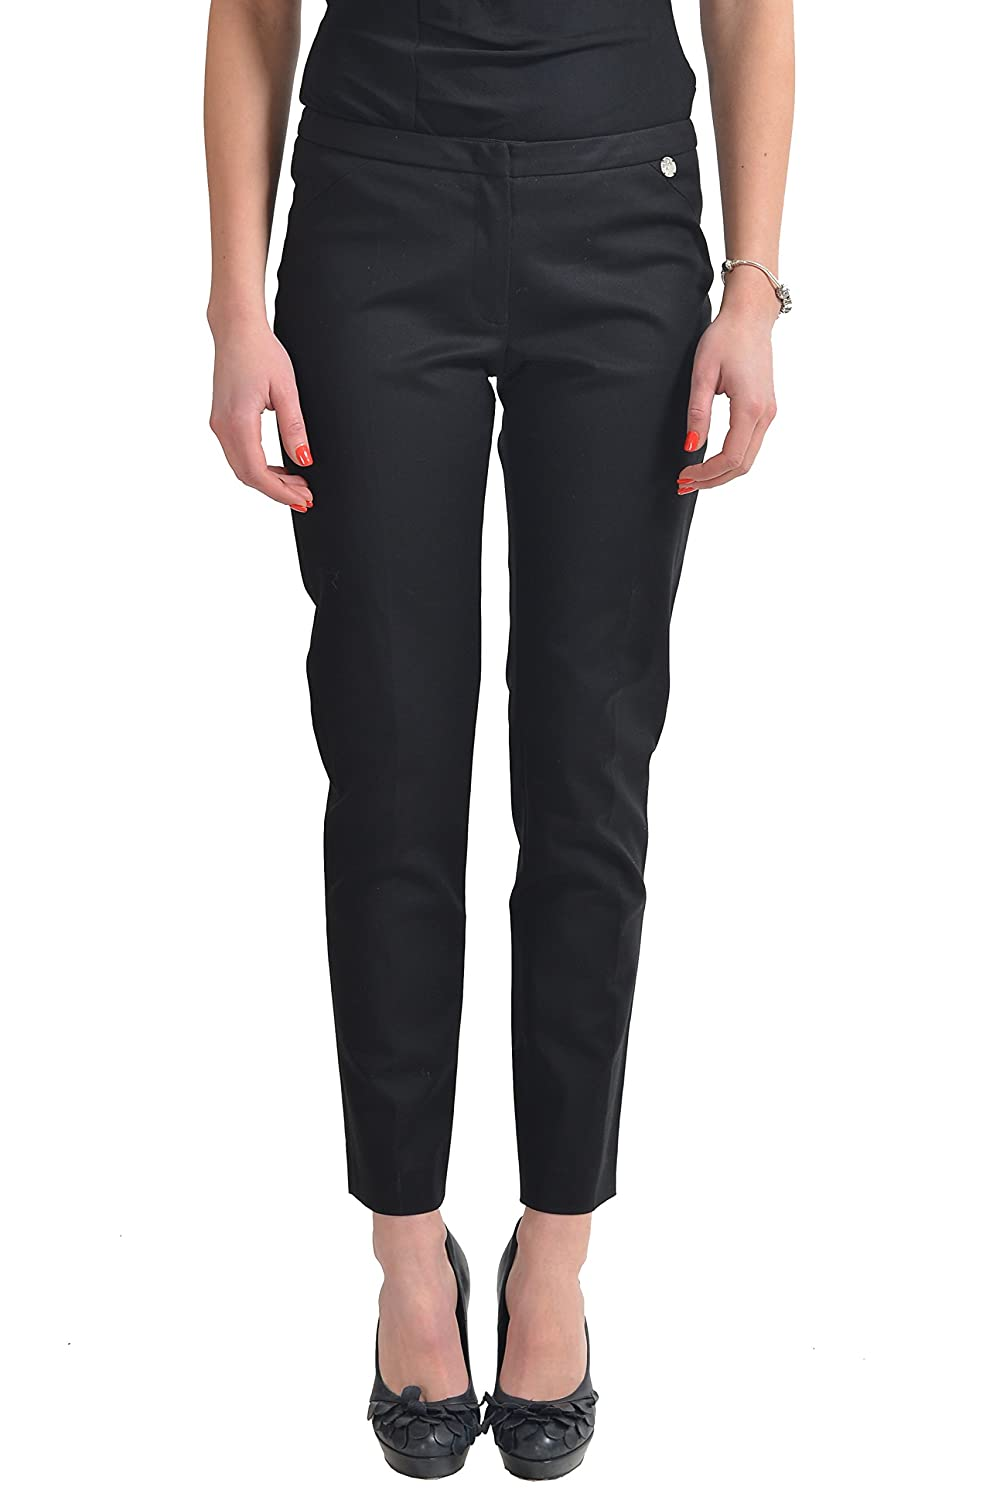 Versace Collection Black Flat Front Cropped Women's Casual Pants US 4 IT 40